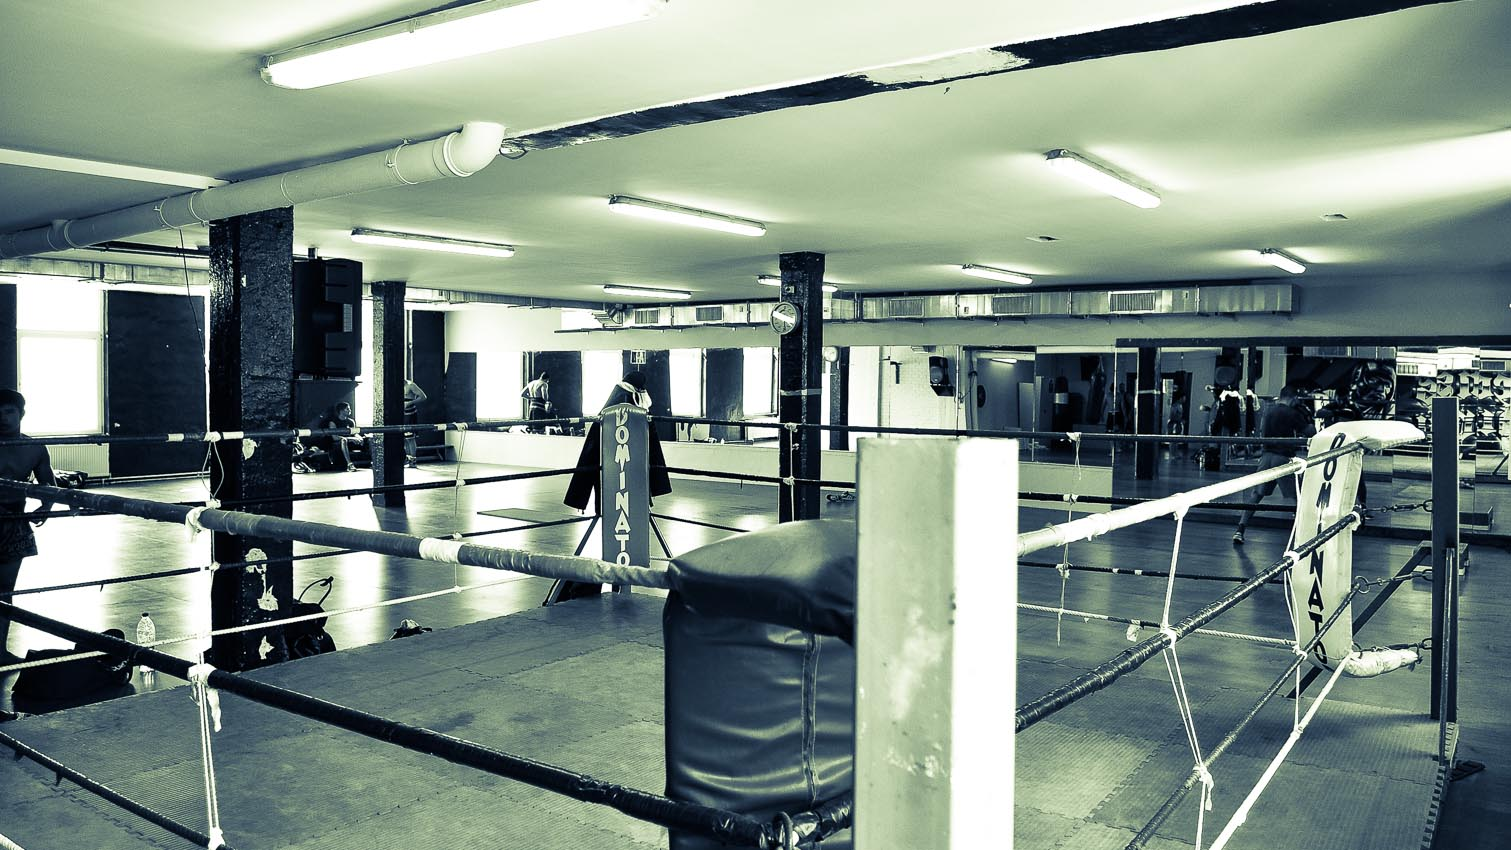 24-sport-boxe-billard-fitness-location-decors-film-cinema-photo-belgium-bruxelles